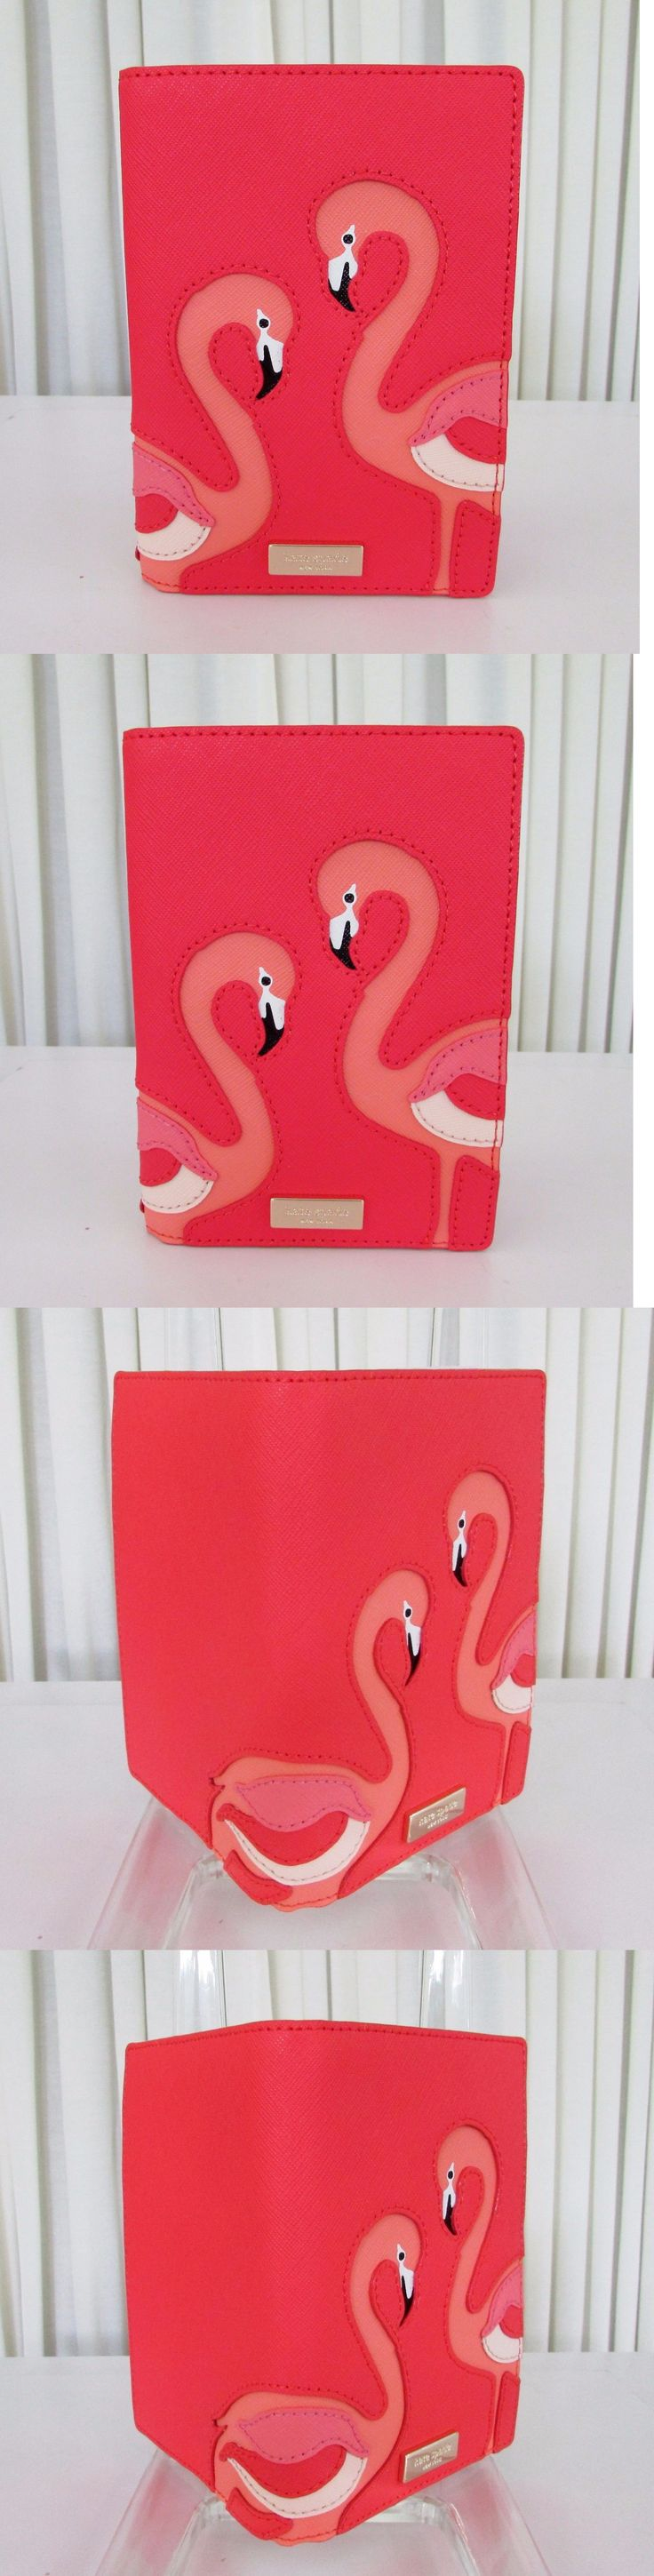 Passport Holders 169288: Kate Spade Flamingo Take A Walk On The Wild Side Passport Holder Wallet Nwt -> BUY IT NOW ONLY: $54.95 on eBay!